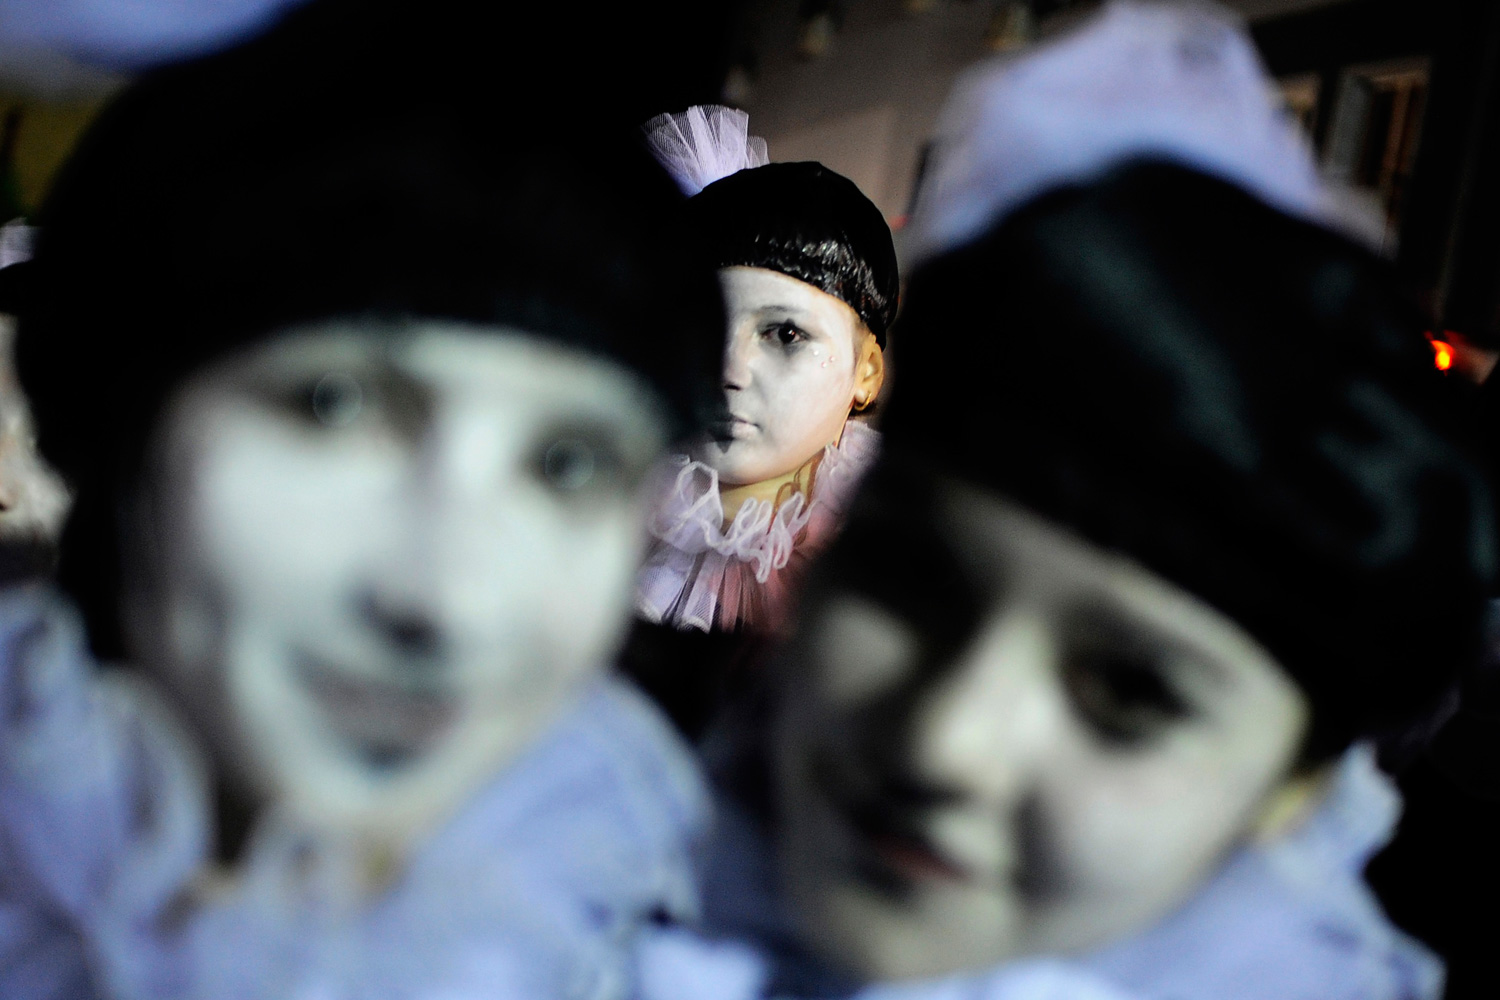 Feb. 25, 2012. Revelers participate at a Trimery celebration in the city of Strumica, Macedonia.